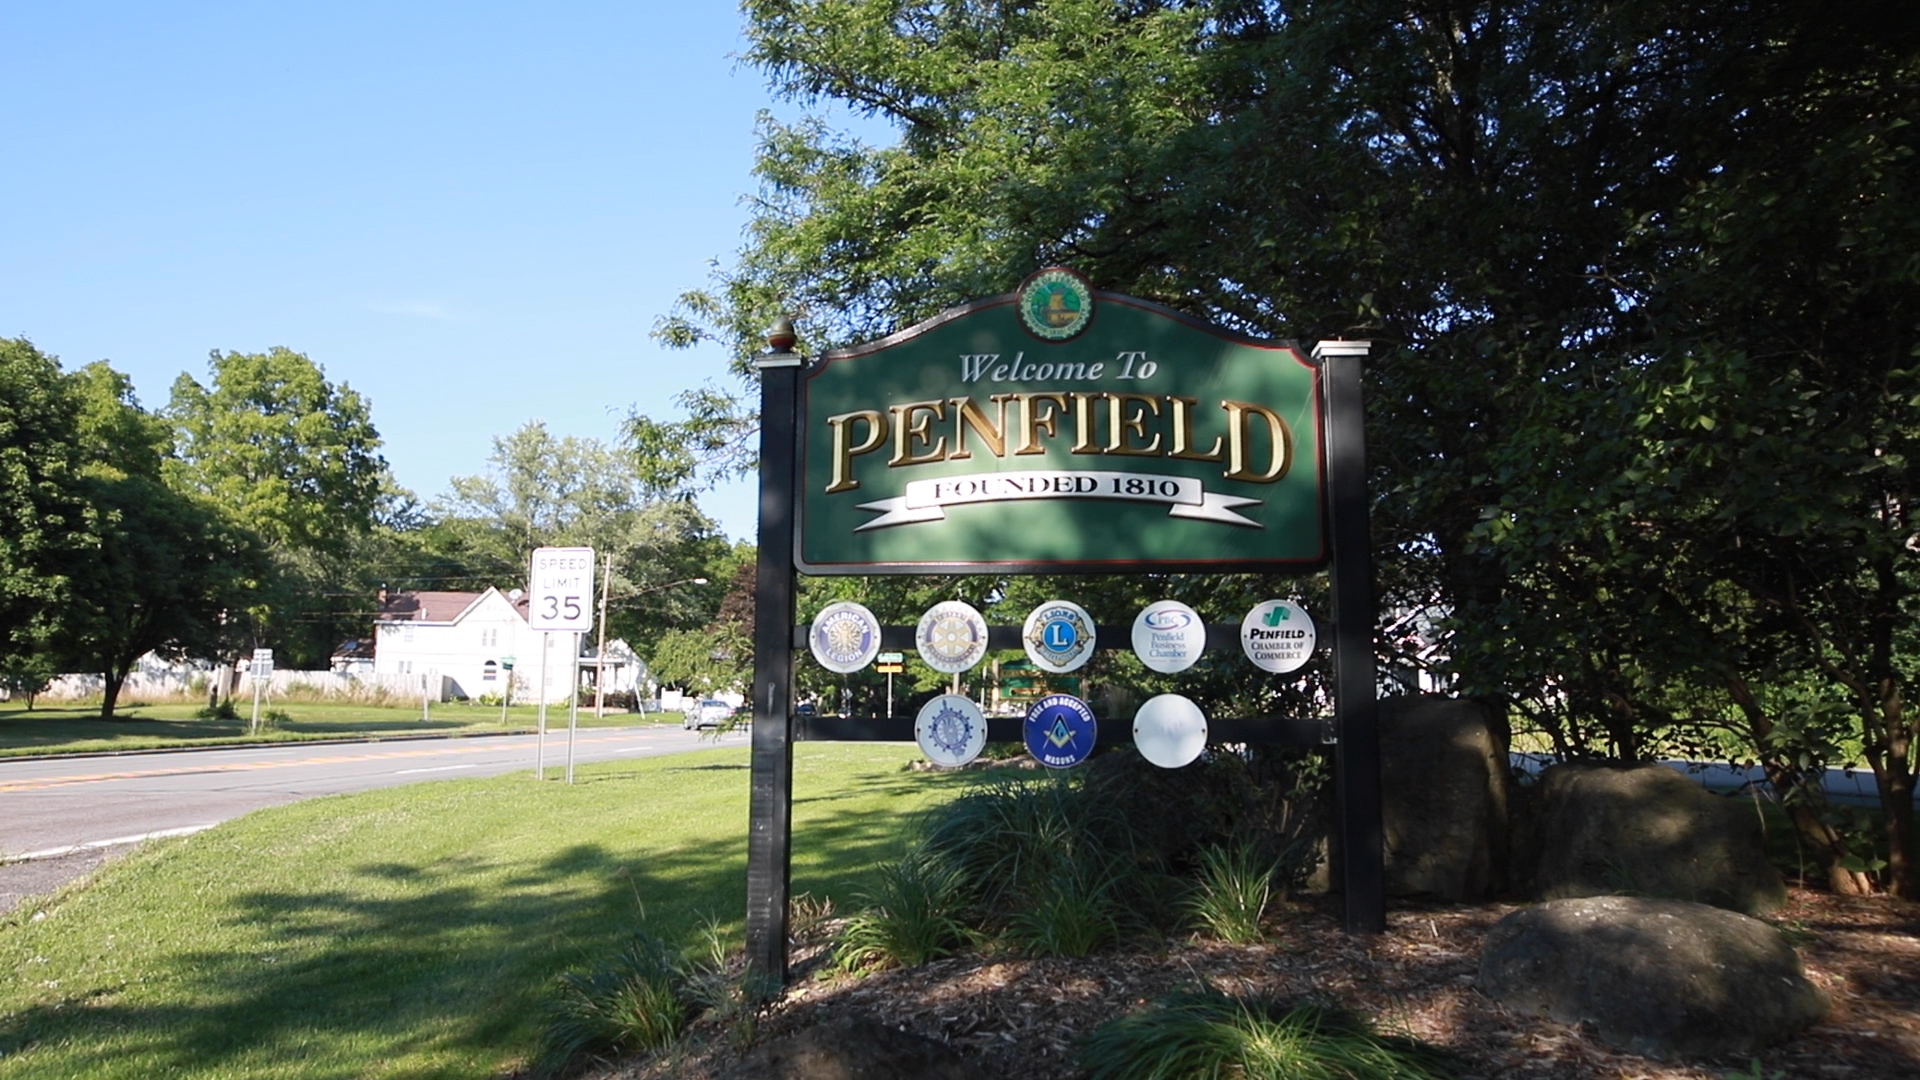 Penfield-sign.jpg